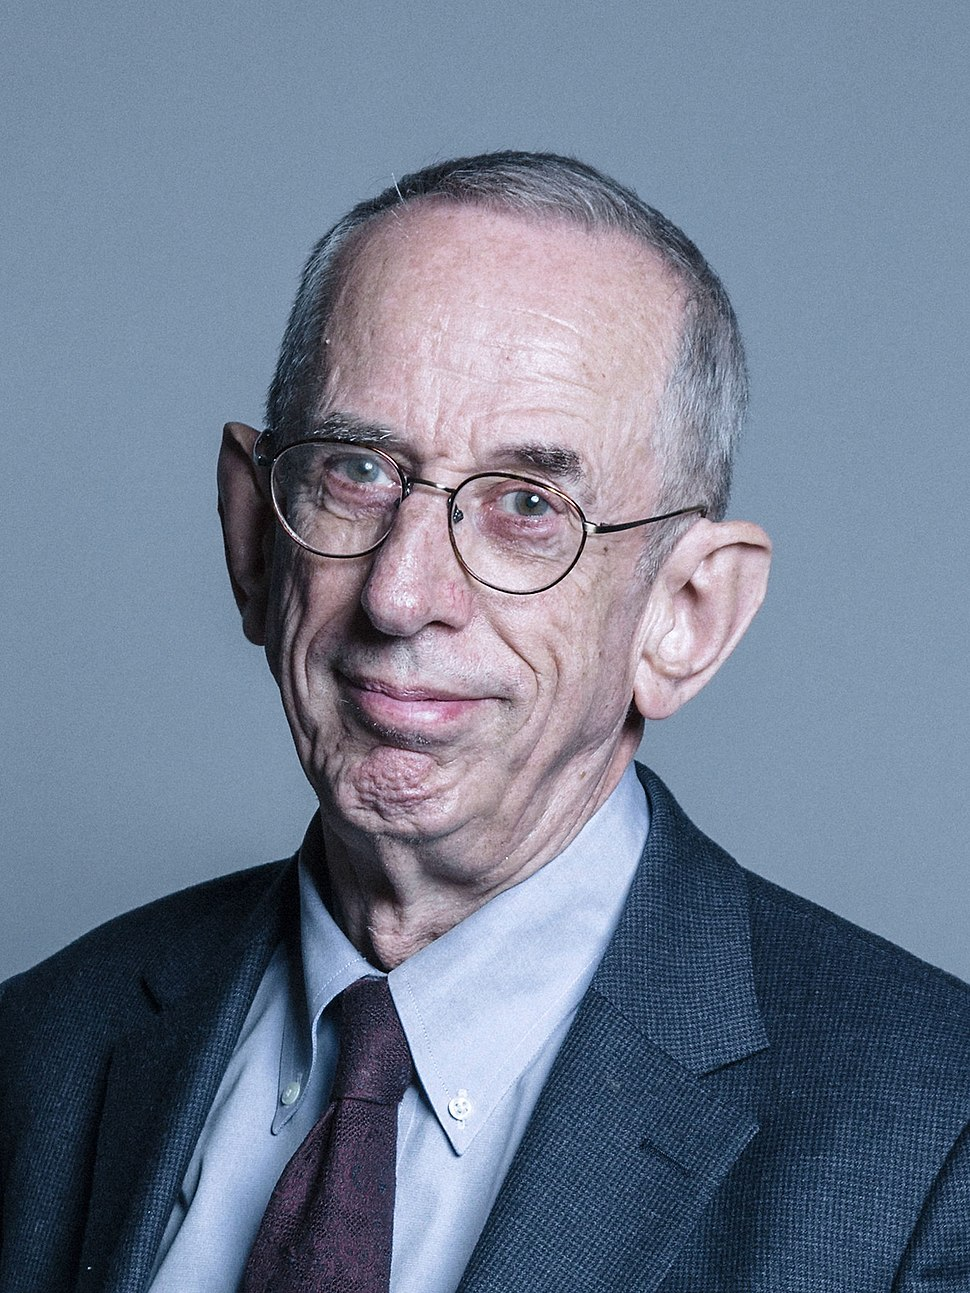 Official portrait of Lord Wilson of Dinton crop 2